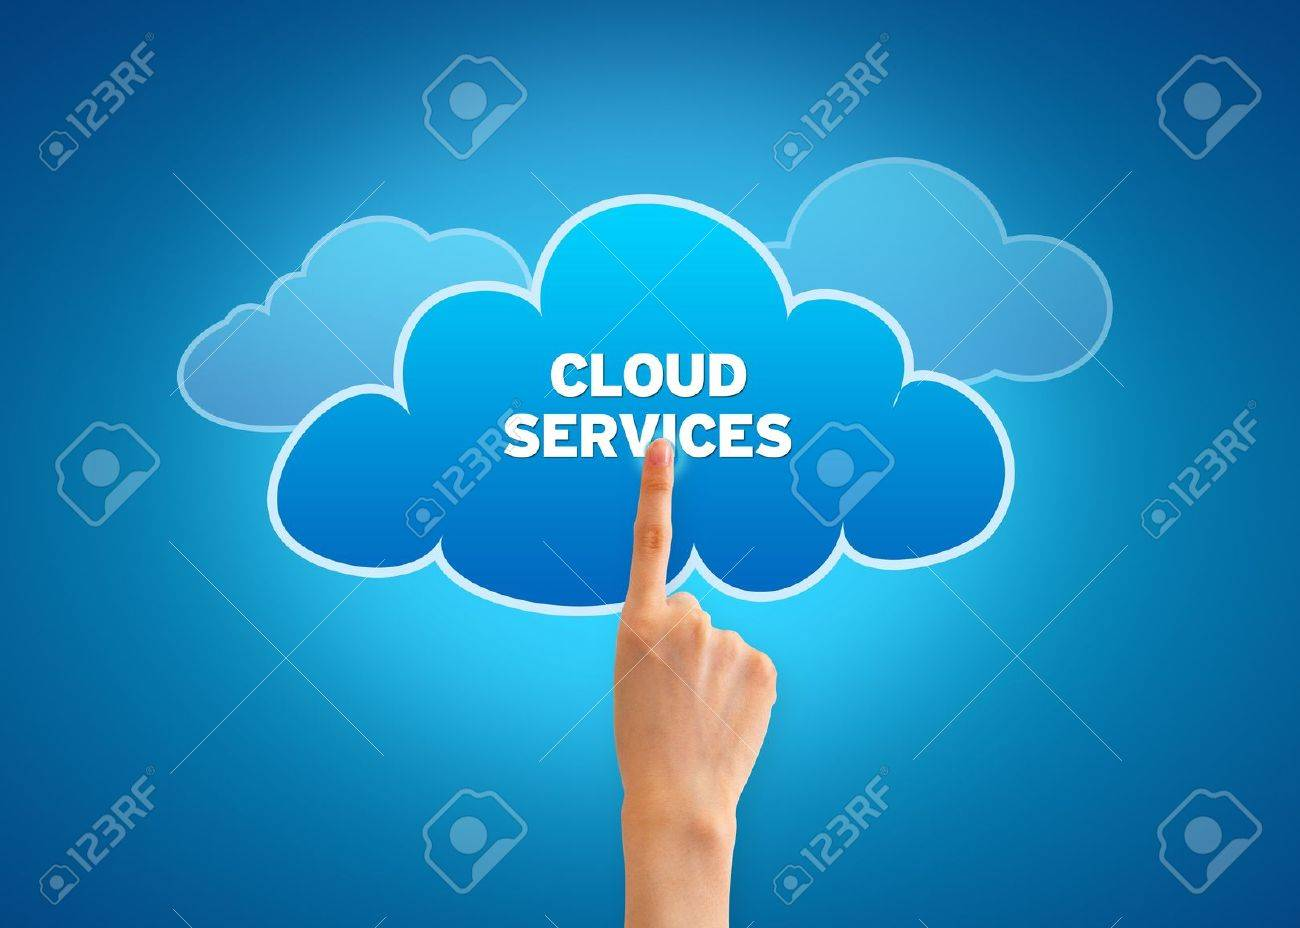 Hand pointing at a Cloud Services Cloud. Stock Photo - 12850867